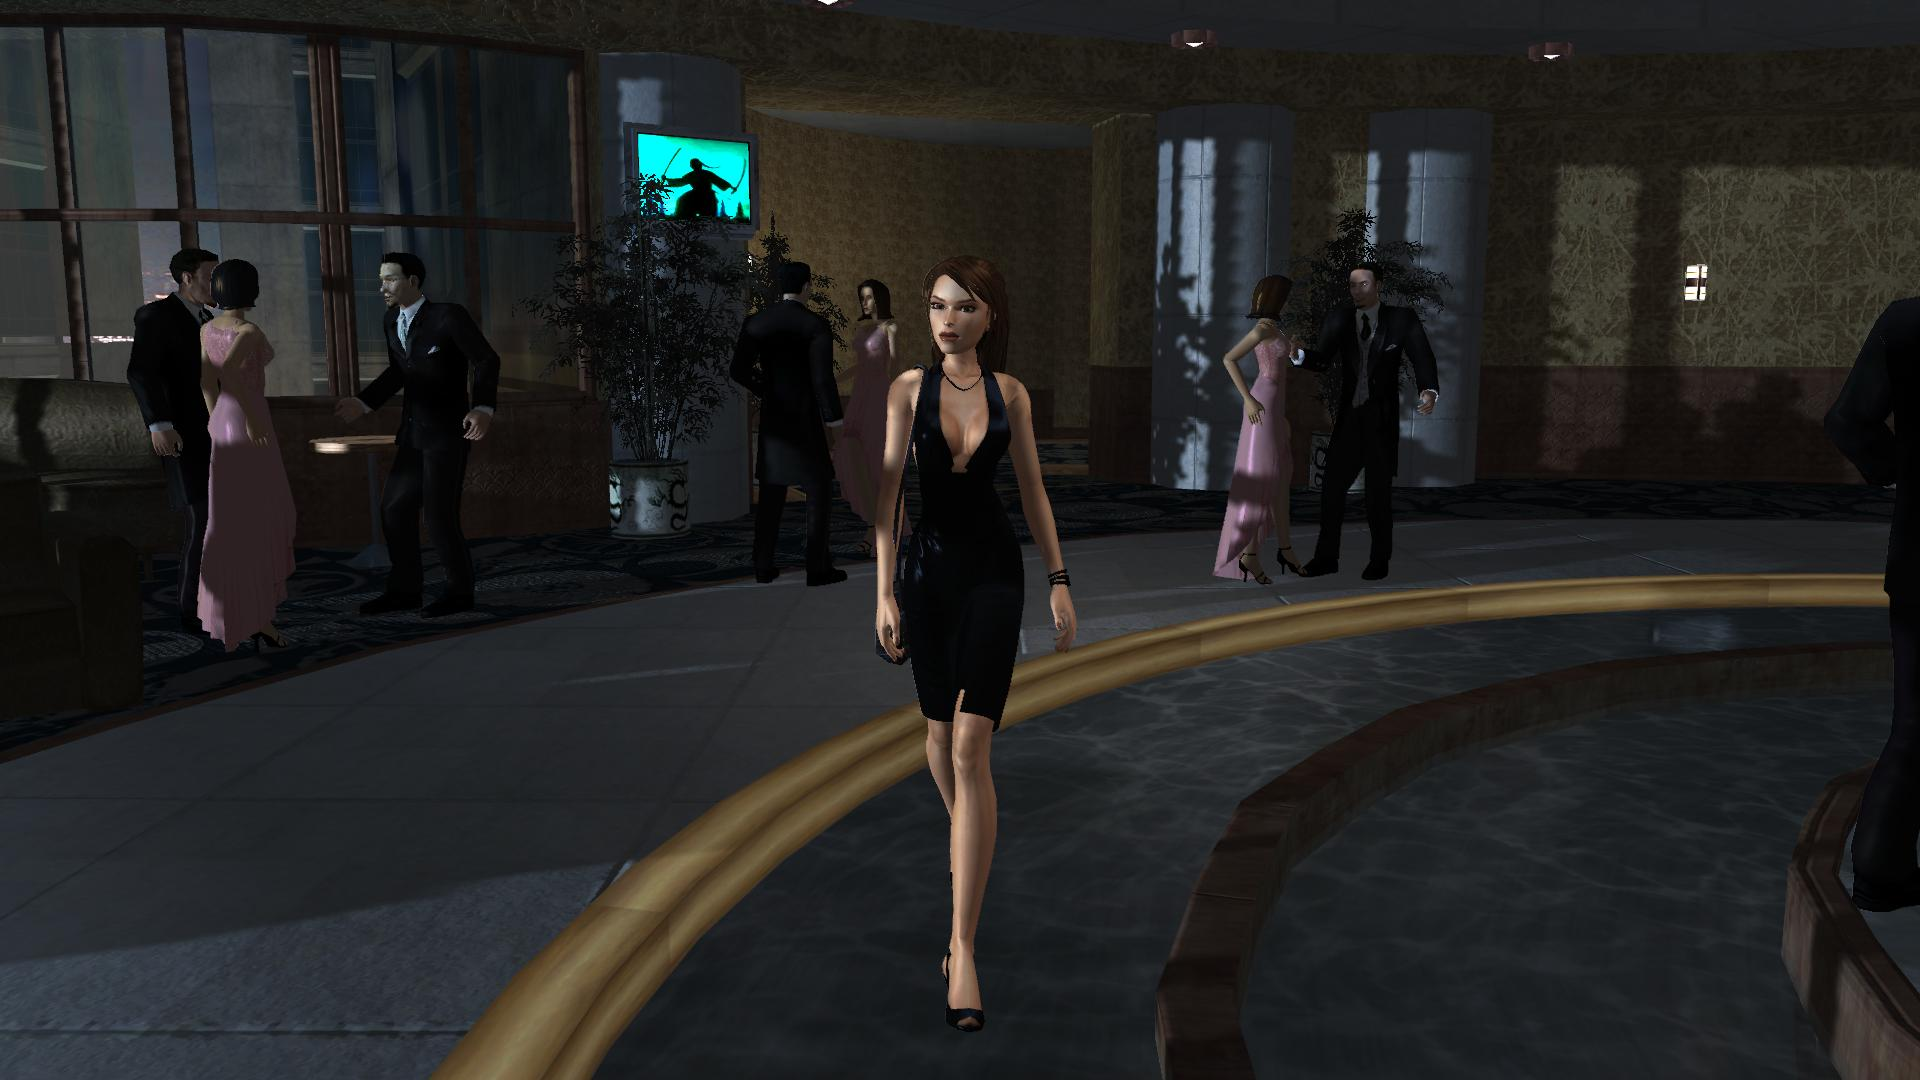 In Tomb Raider: Legend, Crystal augmented Lara's sexuality by combining it with her natural sophistication and poise acquired over years of adventuring. The result was a character whose physical beauty was obvious, but not her most defining characteristic (image courtesy of Crystal Dynamics).